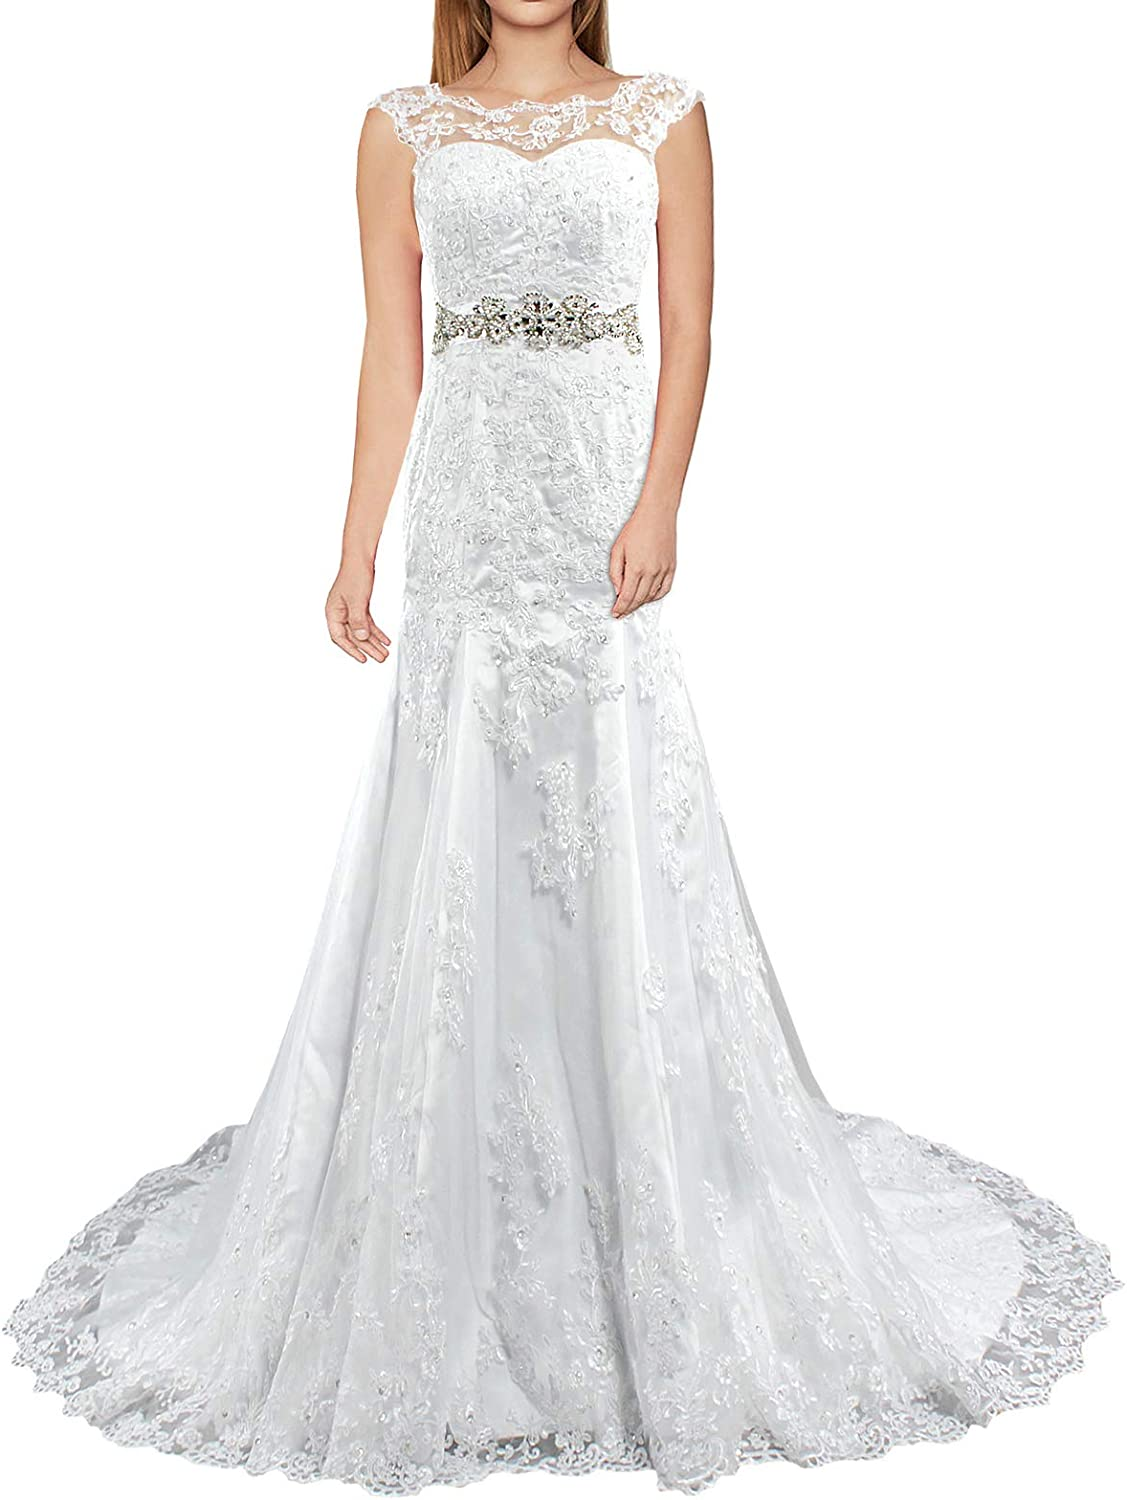 Dreamdress Womens Lace Sheer A-Line Wedding Dresses Sleeveless Bridal